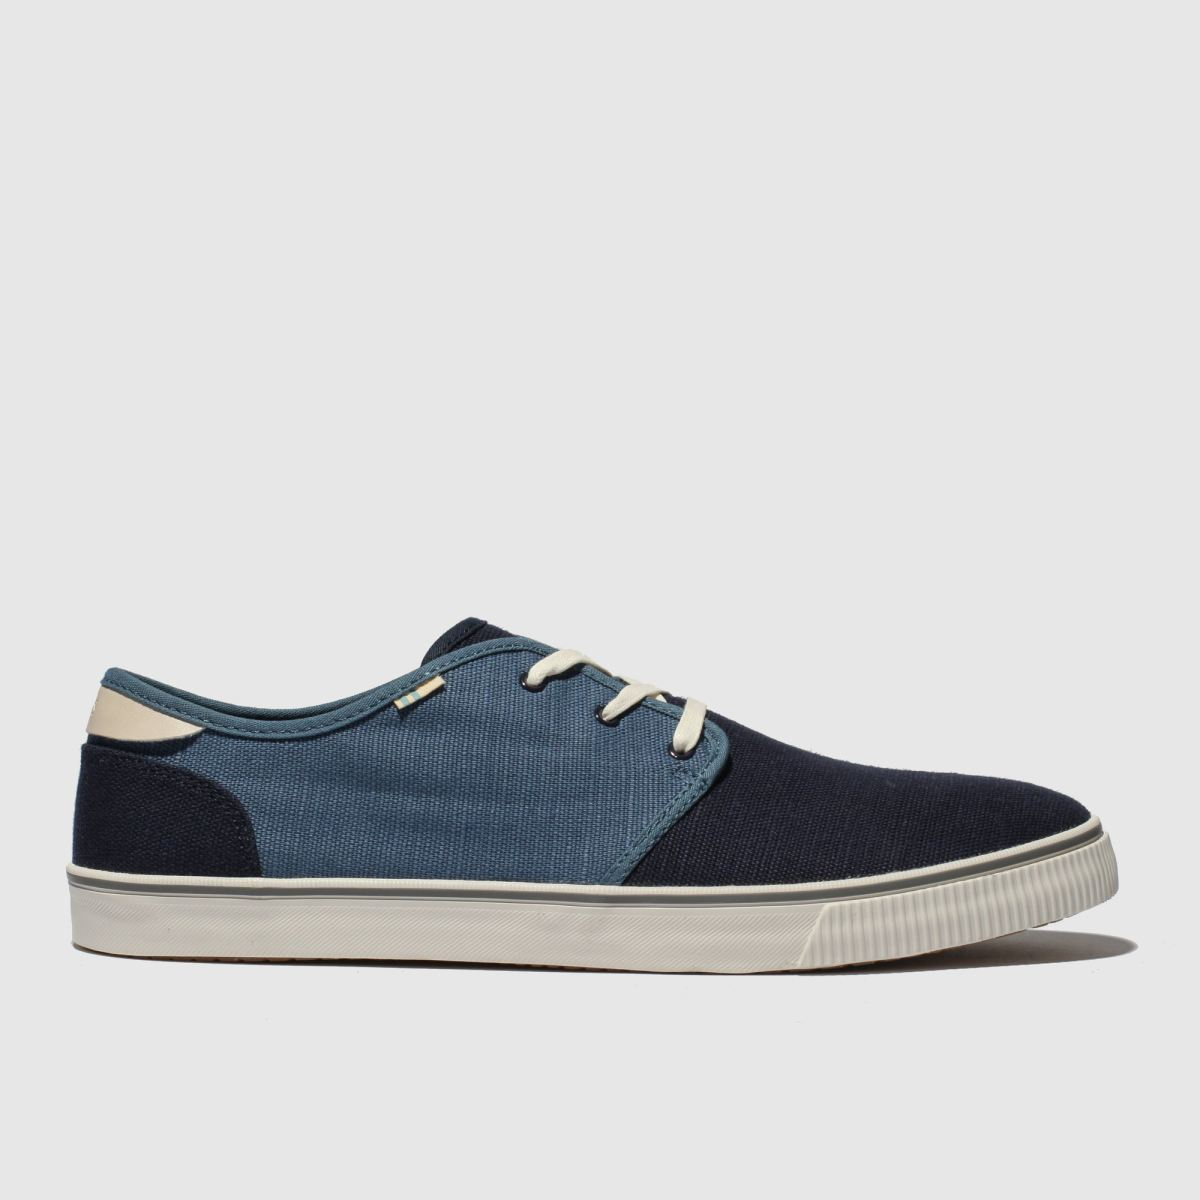 Toms Navy & White Carlo Shoes